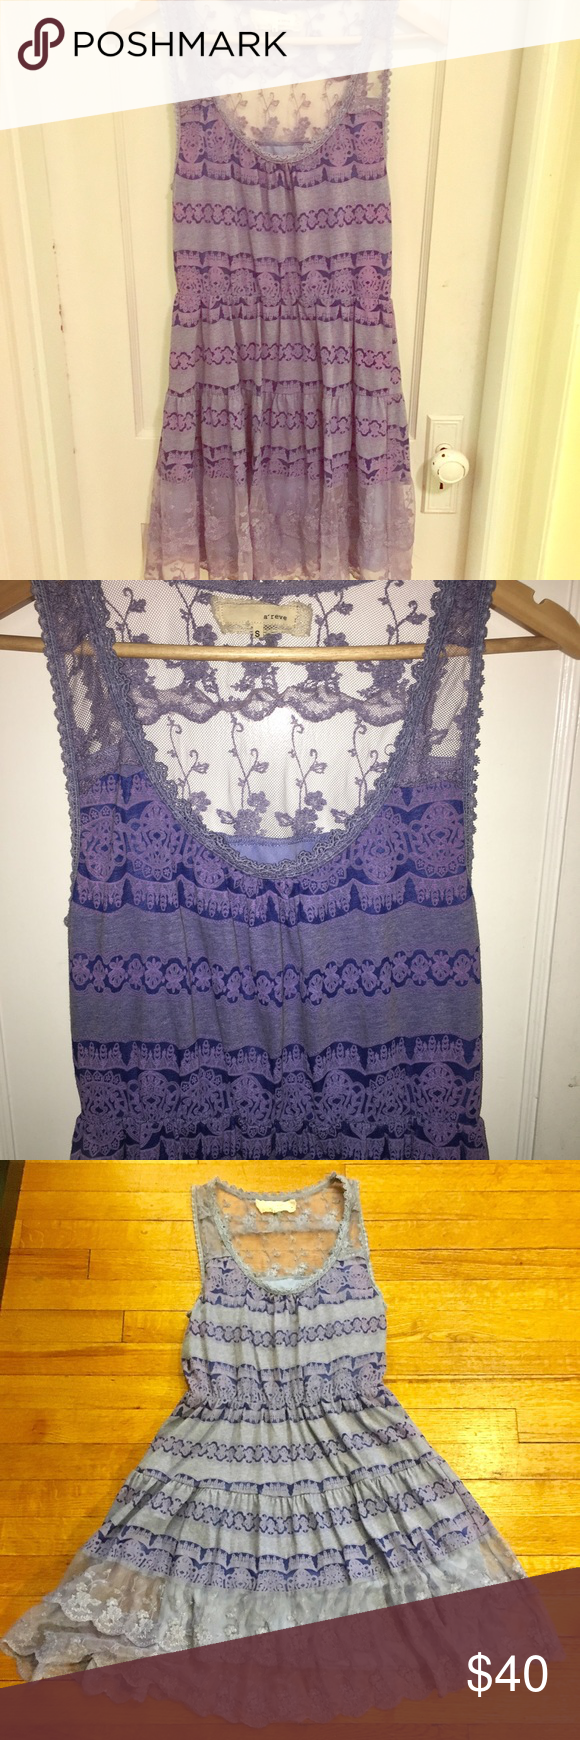 Modcloth A'reve Purple Lace Tier Dress Modcloth A'reve Purple Lace Tier Dress. Beautiful lace detail through your dress. Damask print. Cinched waist. Perfect for spring or Easter dress! ModCloth Dresses